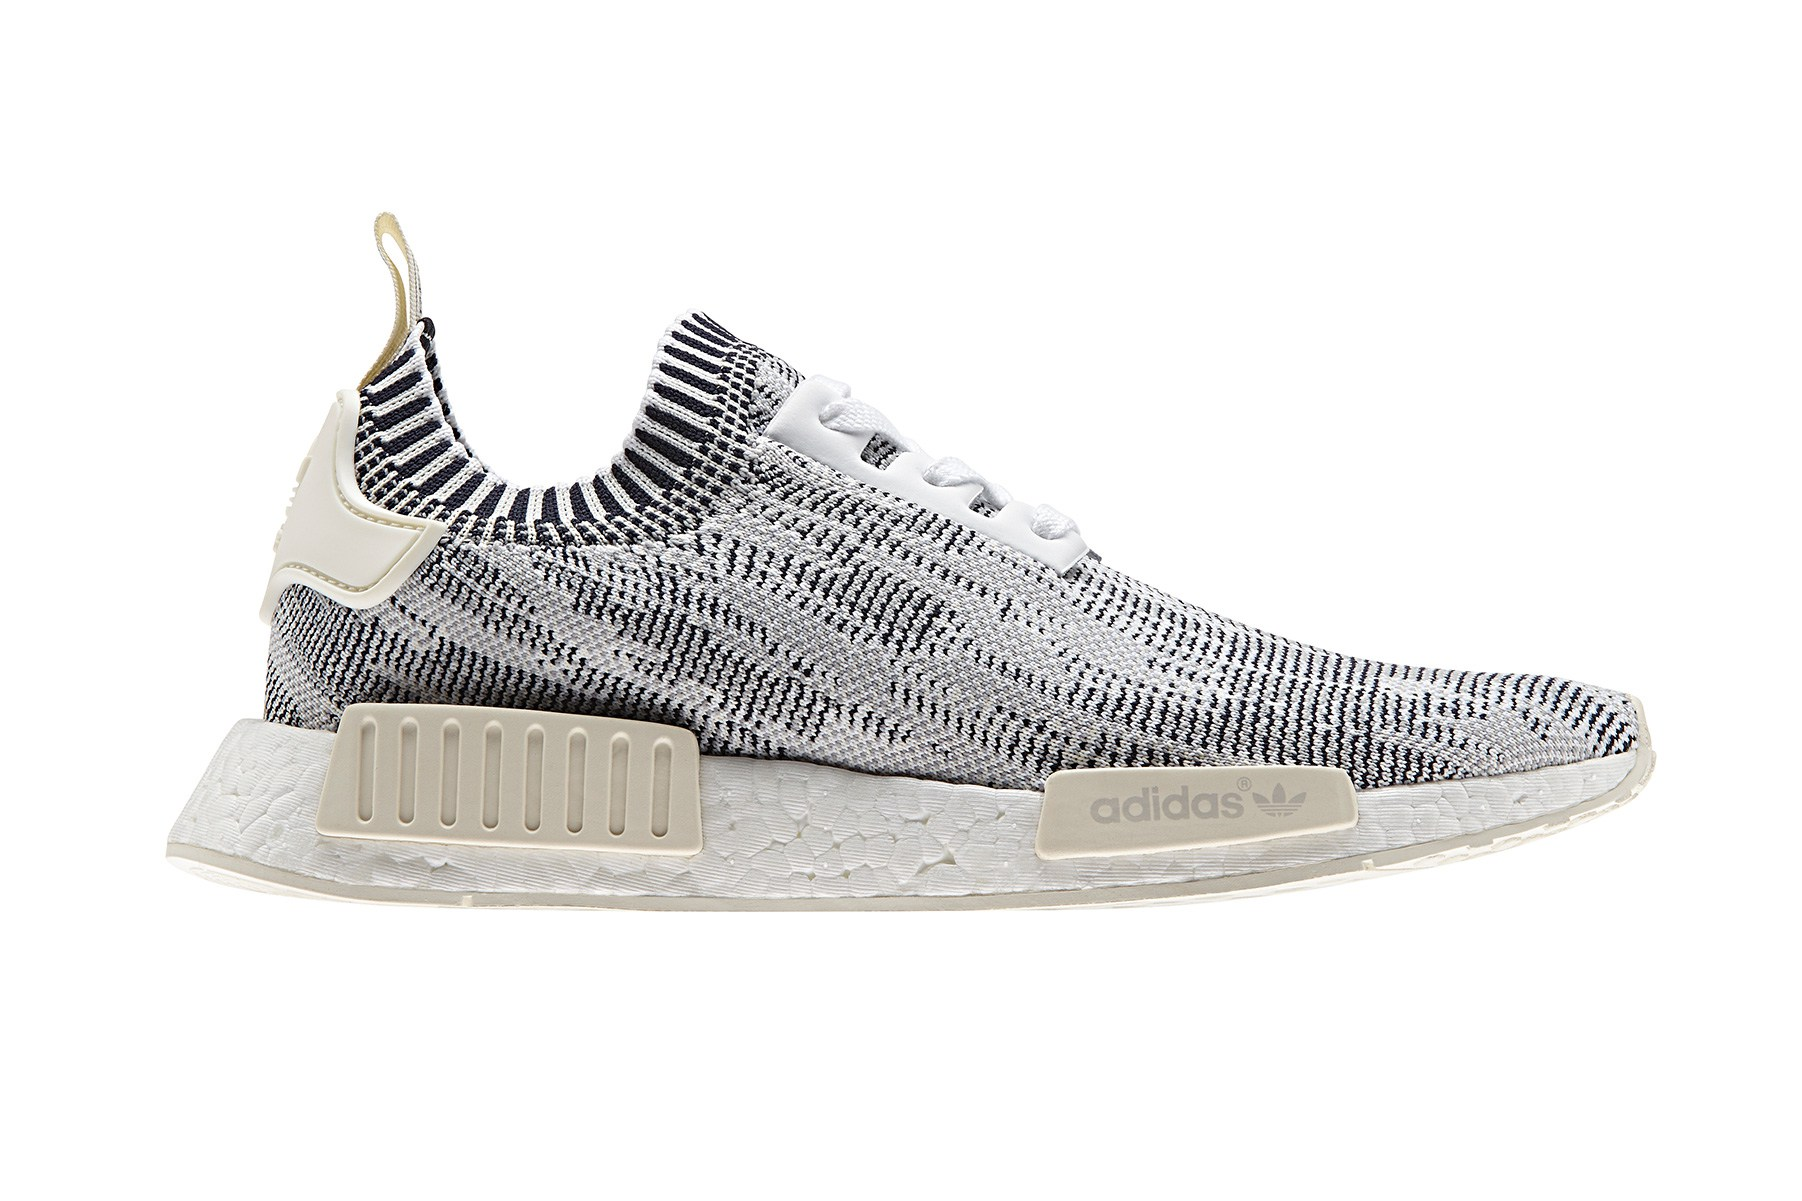 the adidas nmd r1 pk camo pack is coming to the u s this month hypebeast. Black Bedroom Furniture Sets. Home Design Ideas